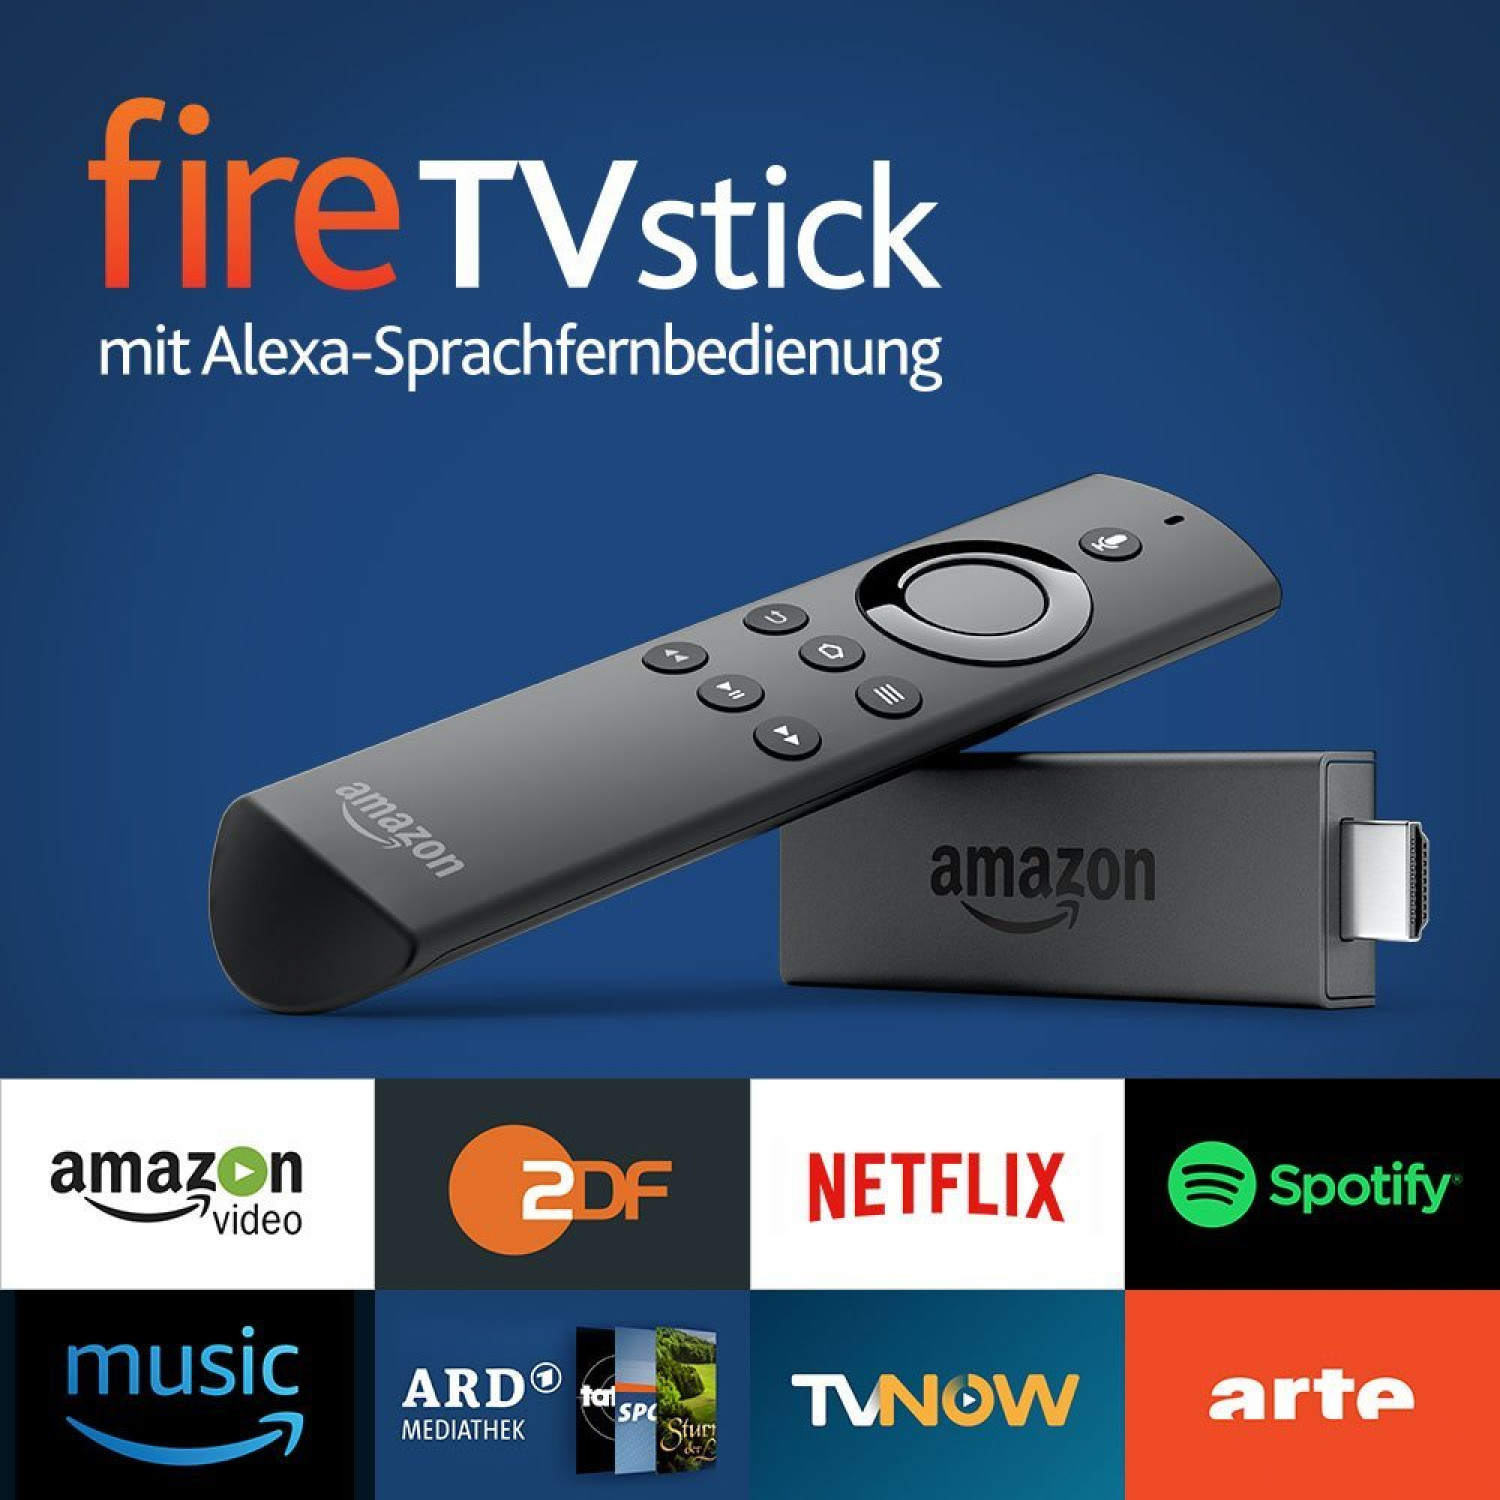 fire tv stick installieren ohne amazon konto